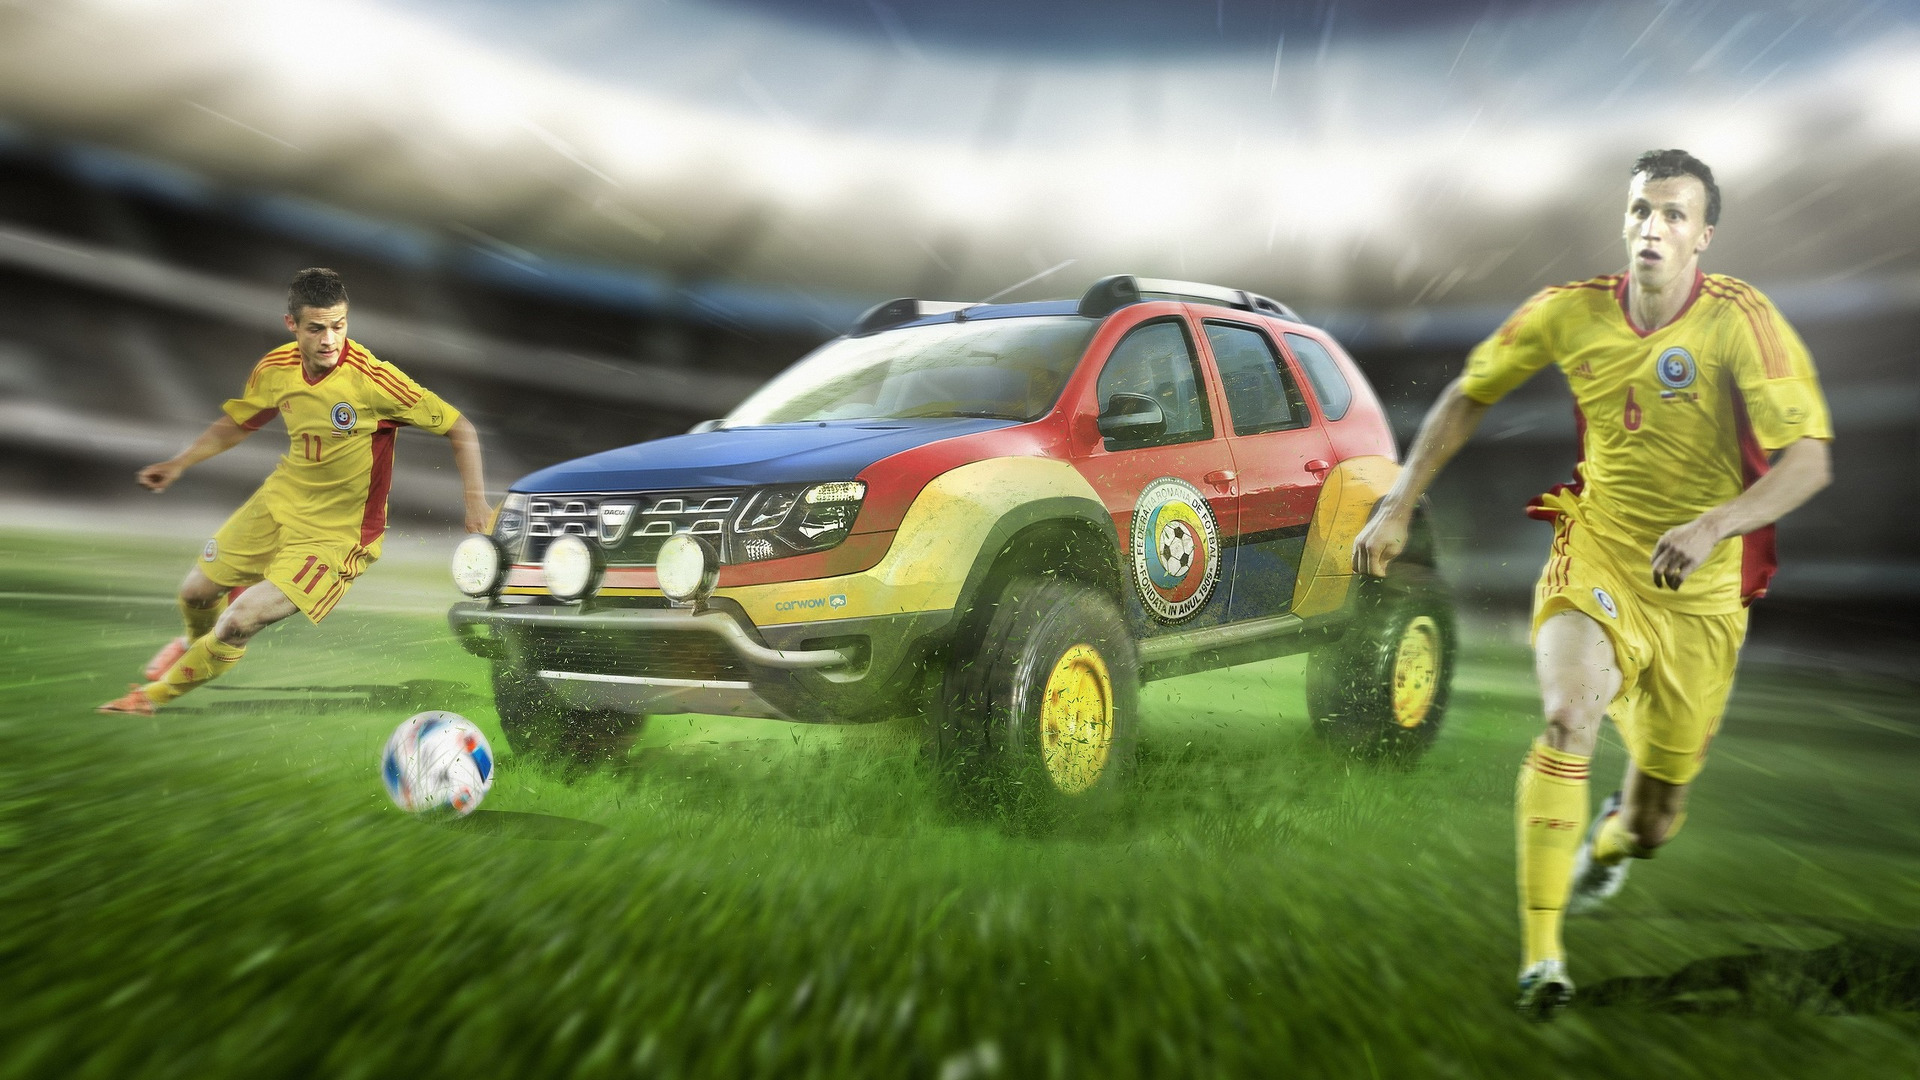 Euro 2016 teams get matching cars just for fun